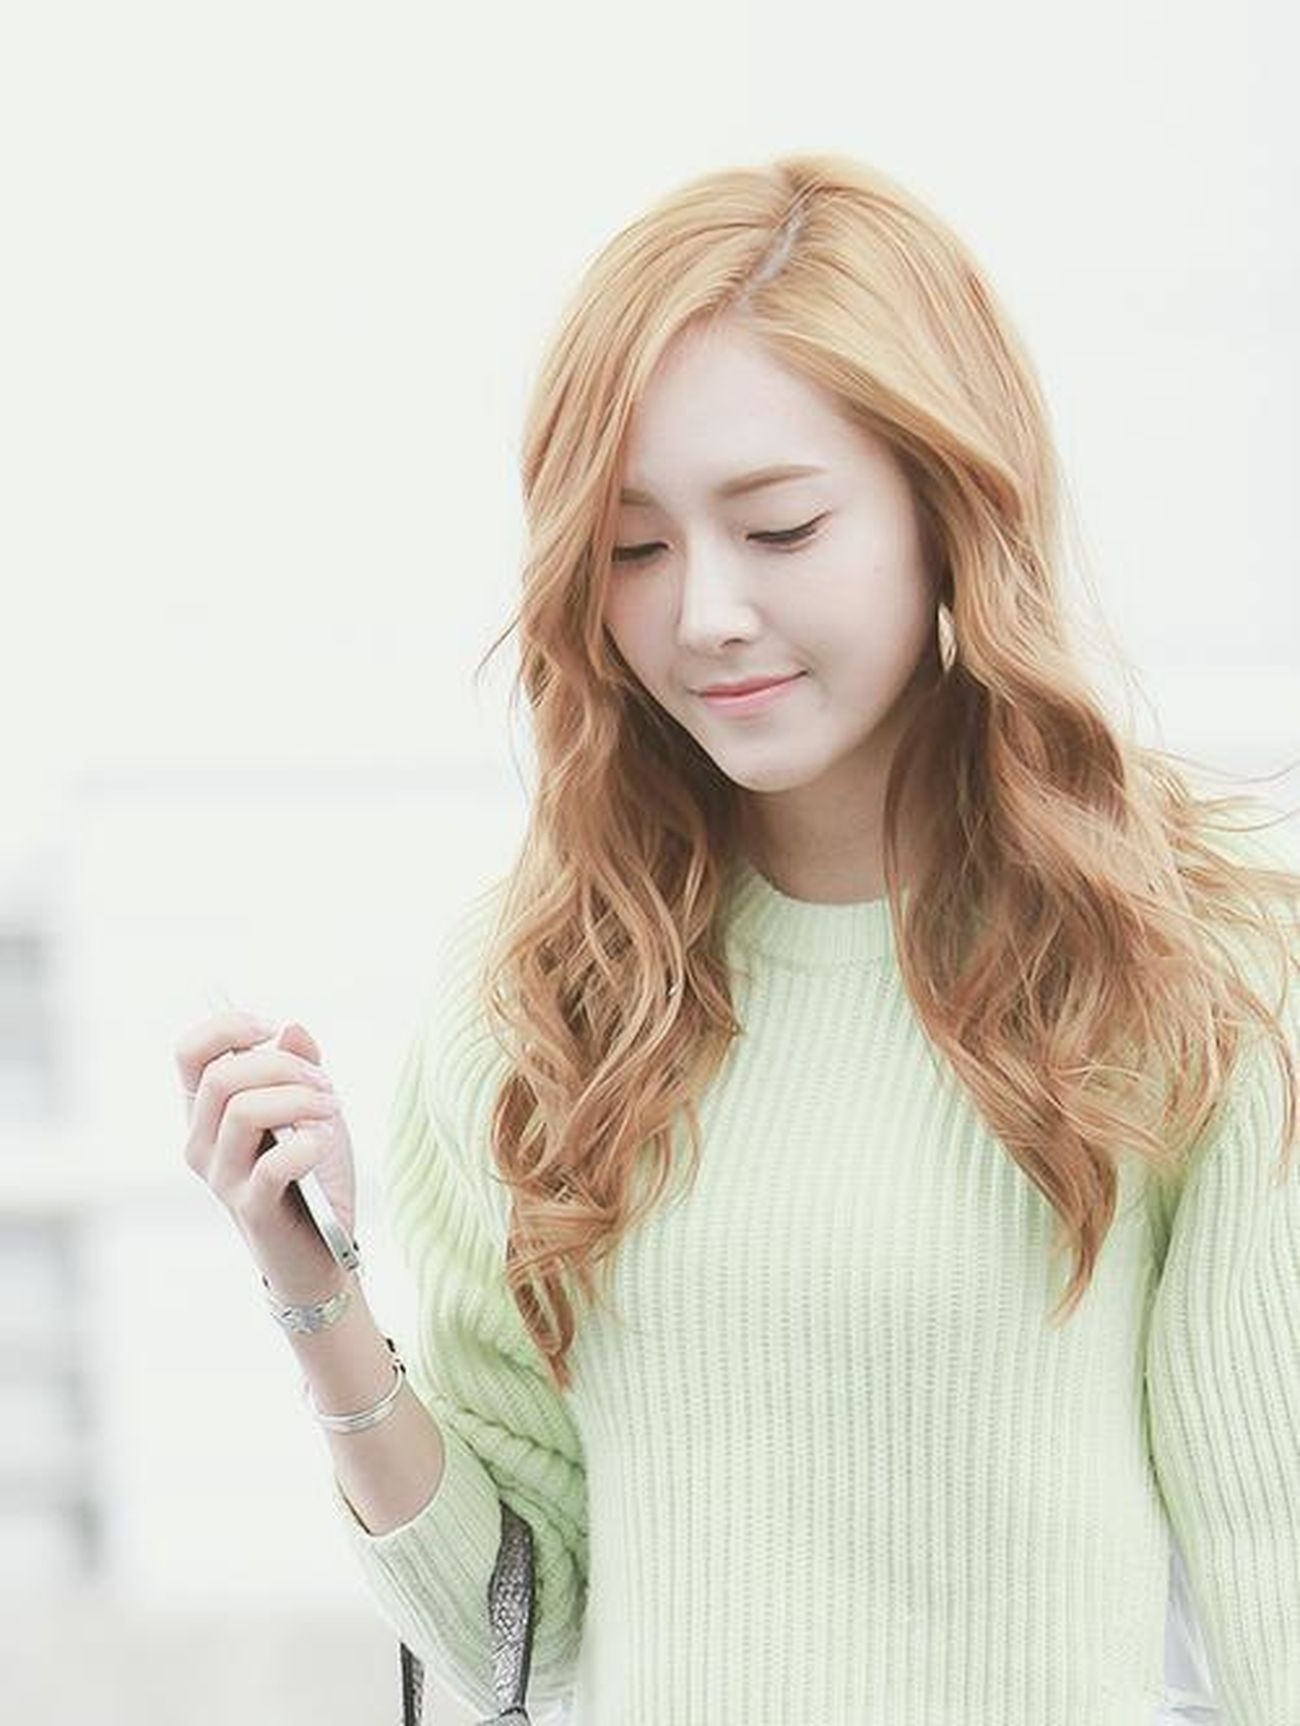 it has been quite awhile since you left Forever Girls' Generation Jessica Jung